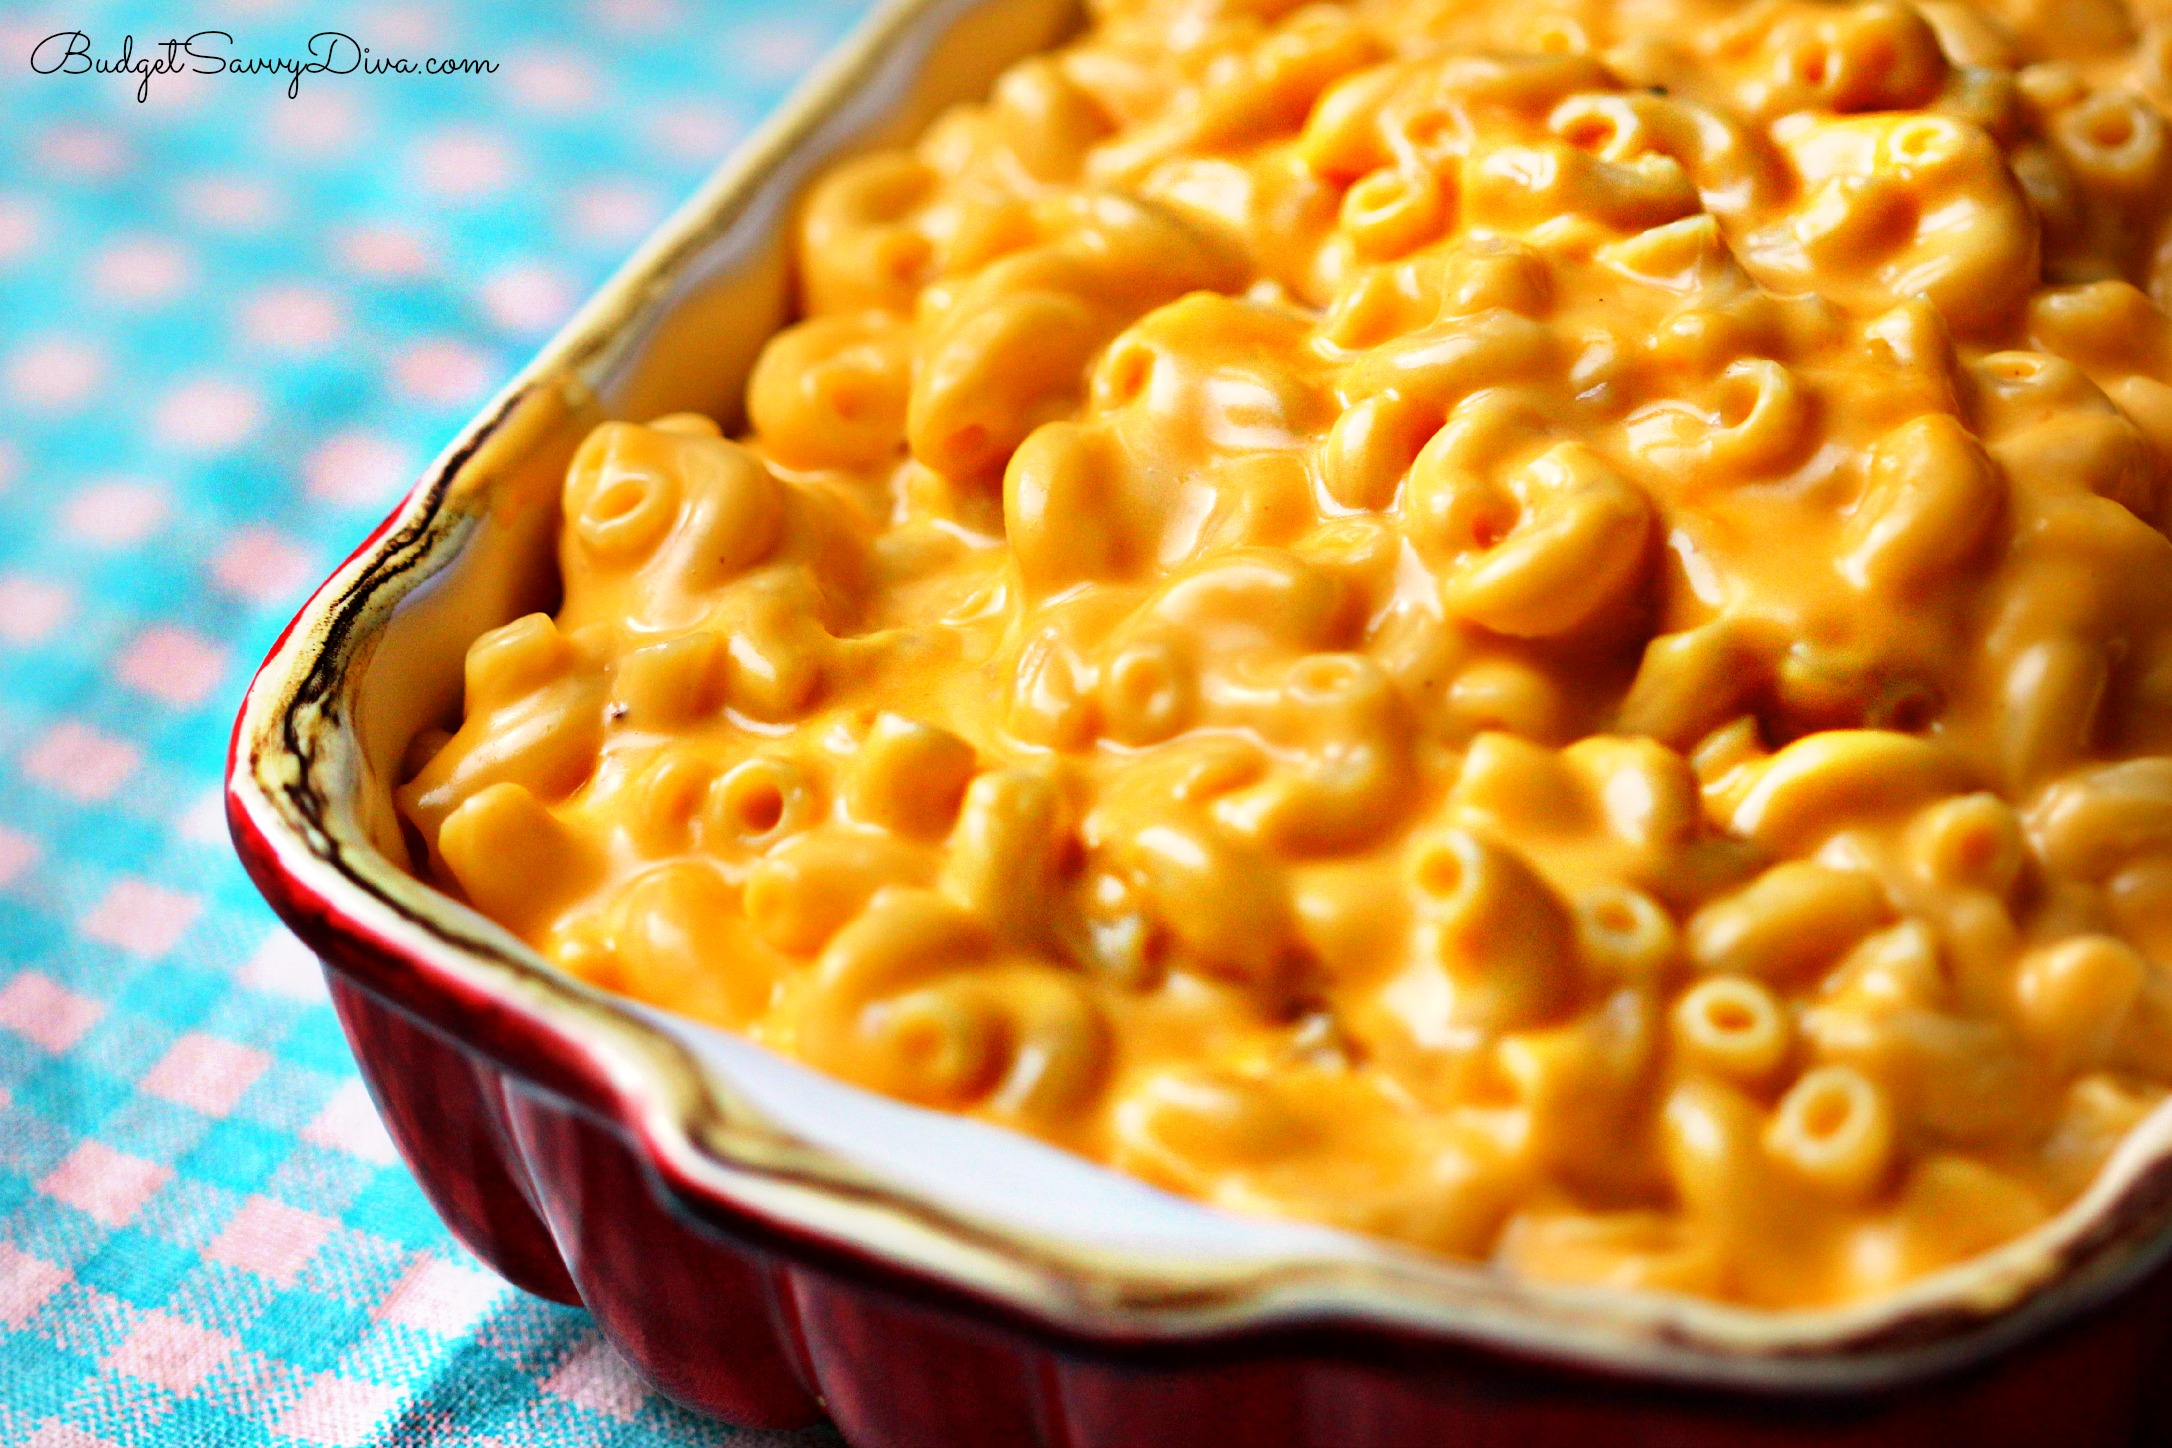 Stouffers Macaroni Cheese Recipe Budget Savvy Diva